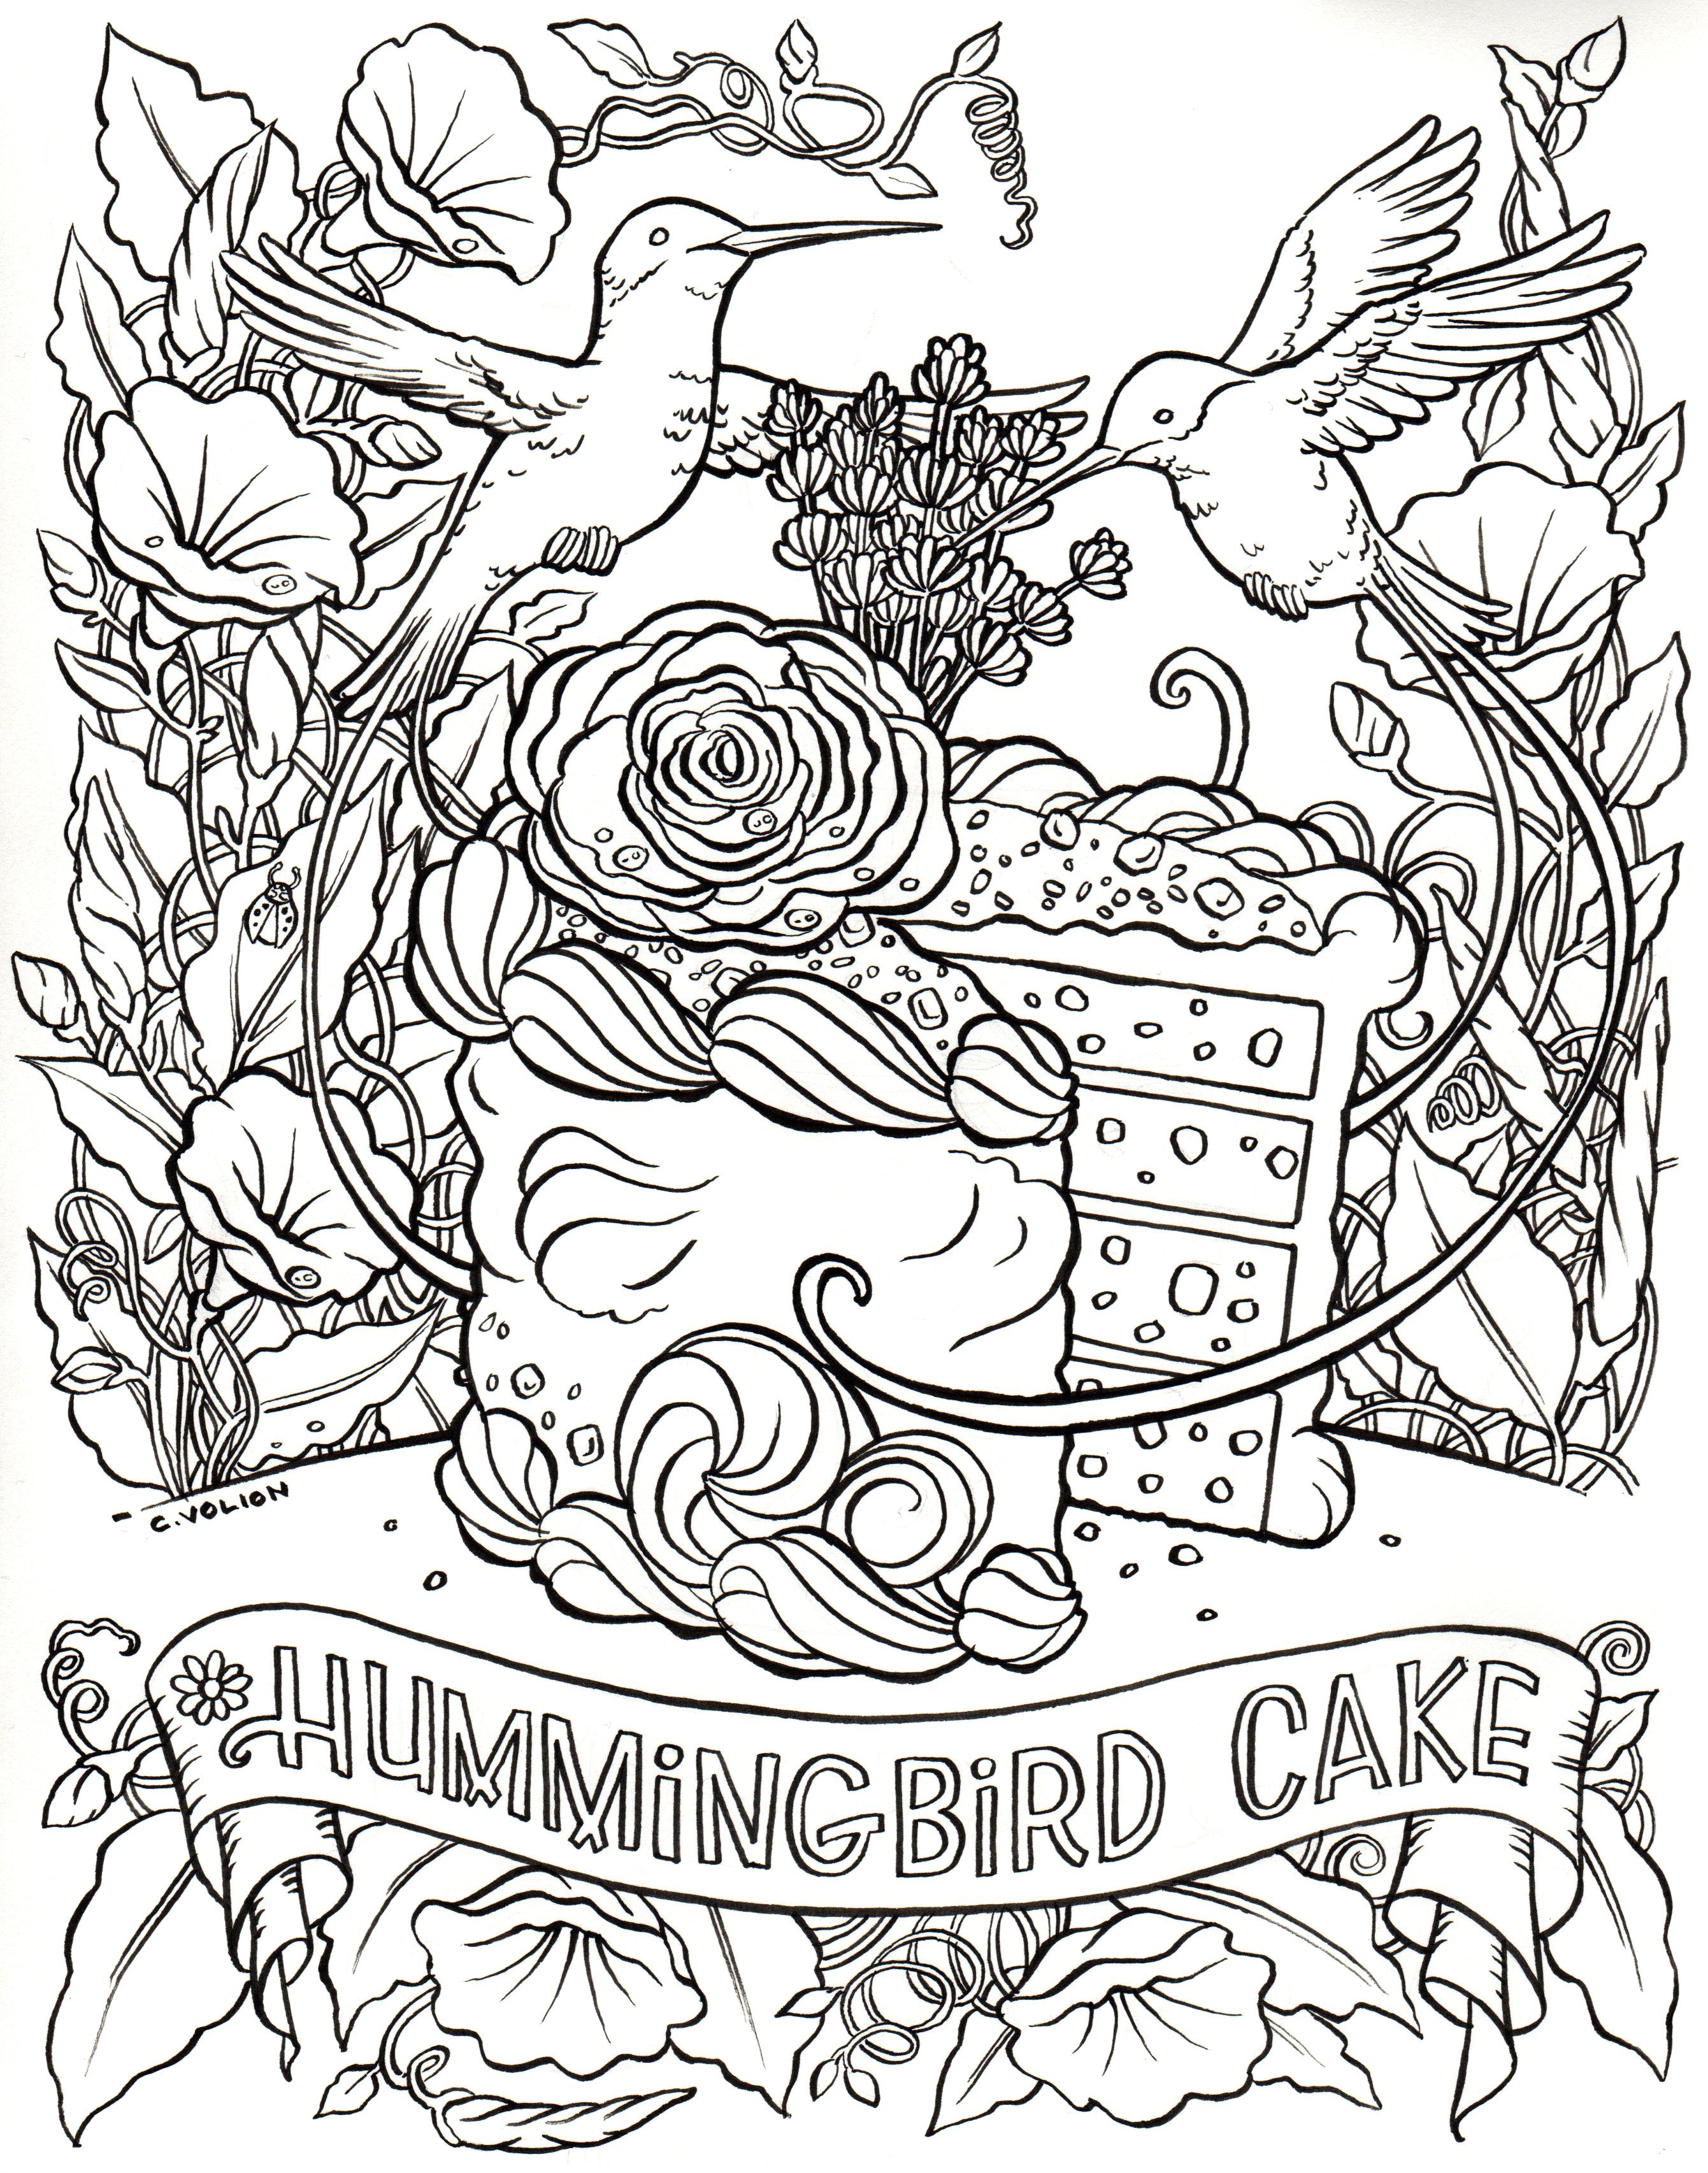 The Fantasy Cake Color And Bake Cookbook